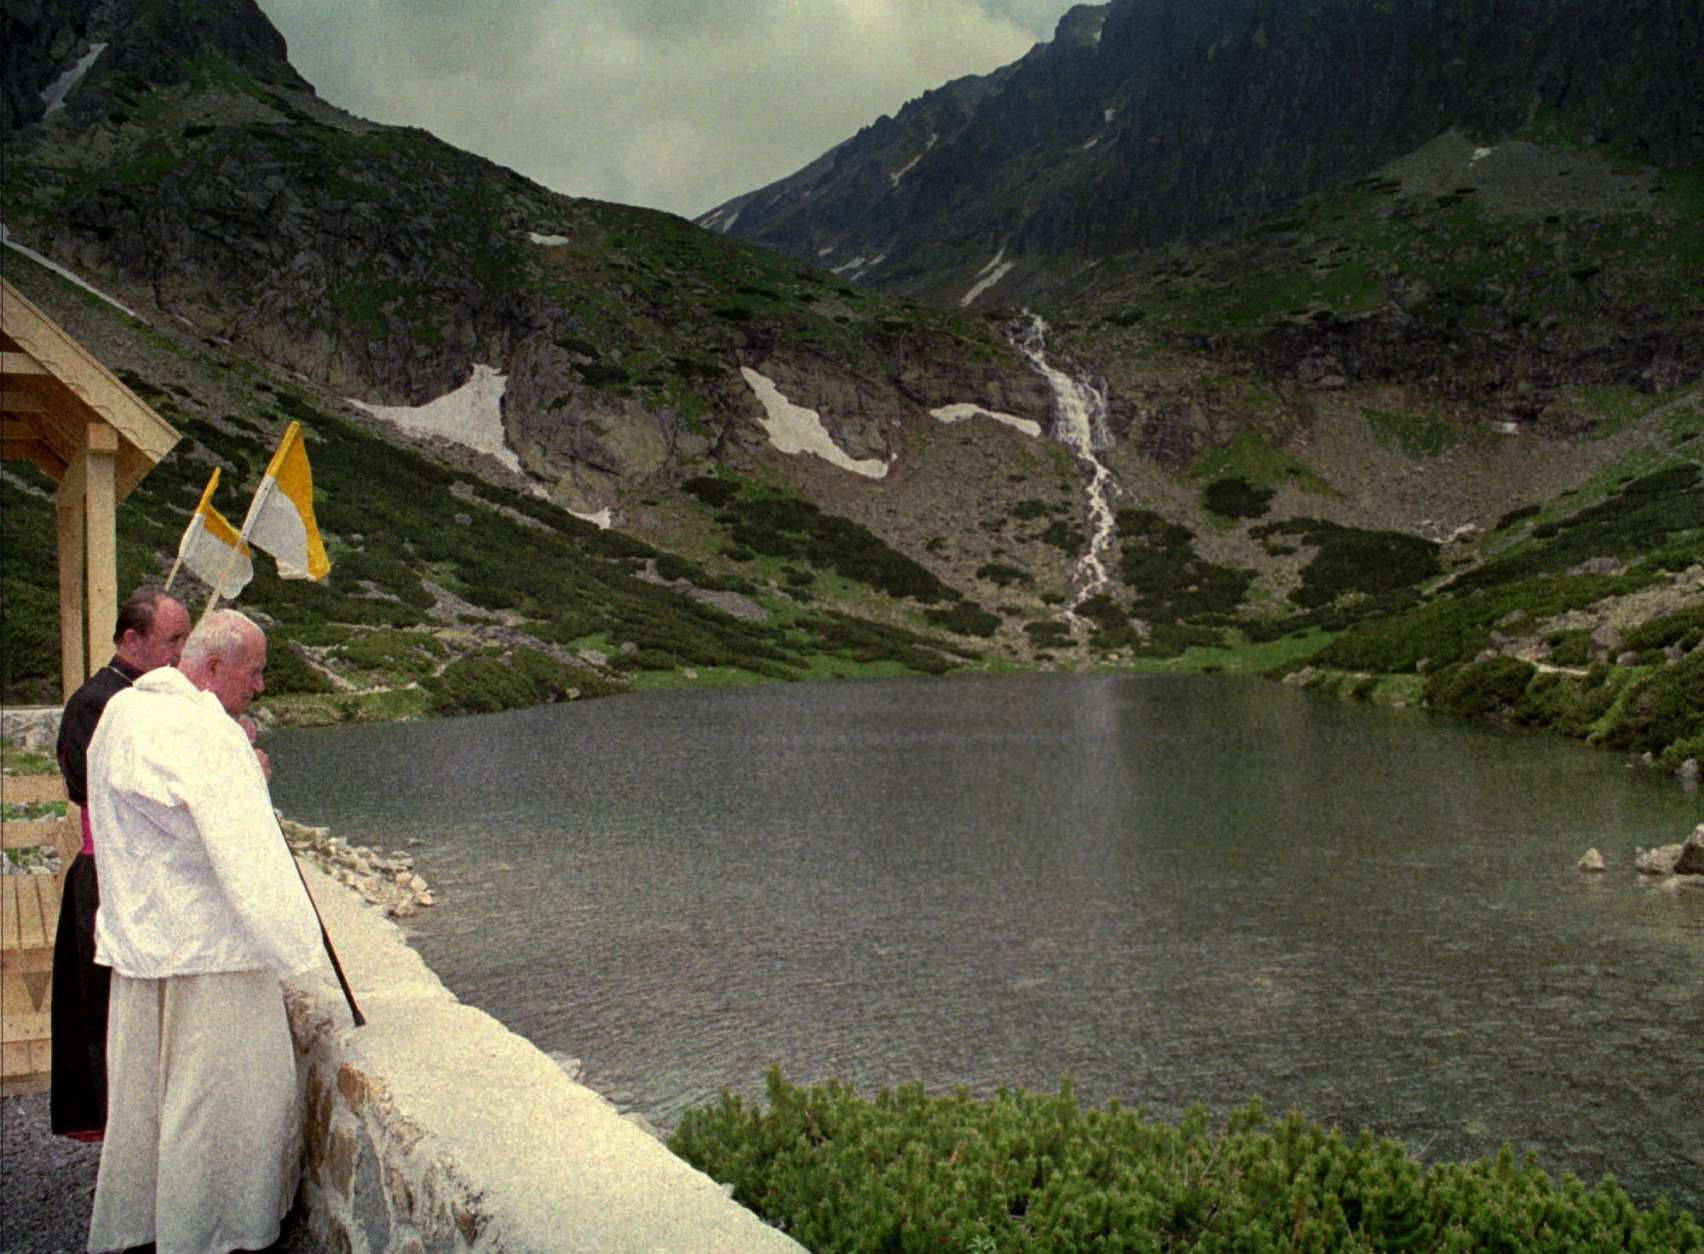 Pope John Paul II stands at the Velicke pleso lake in the Tatra mountains near Stary Smokovec, Monday, July 3, 1995. Monday is the last day of a four-day-trip of the Pope to Slovakia. (AP Photo/ Vatican Pool / Arturo Mari)